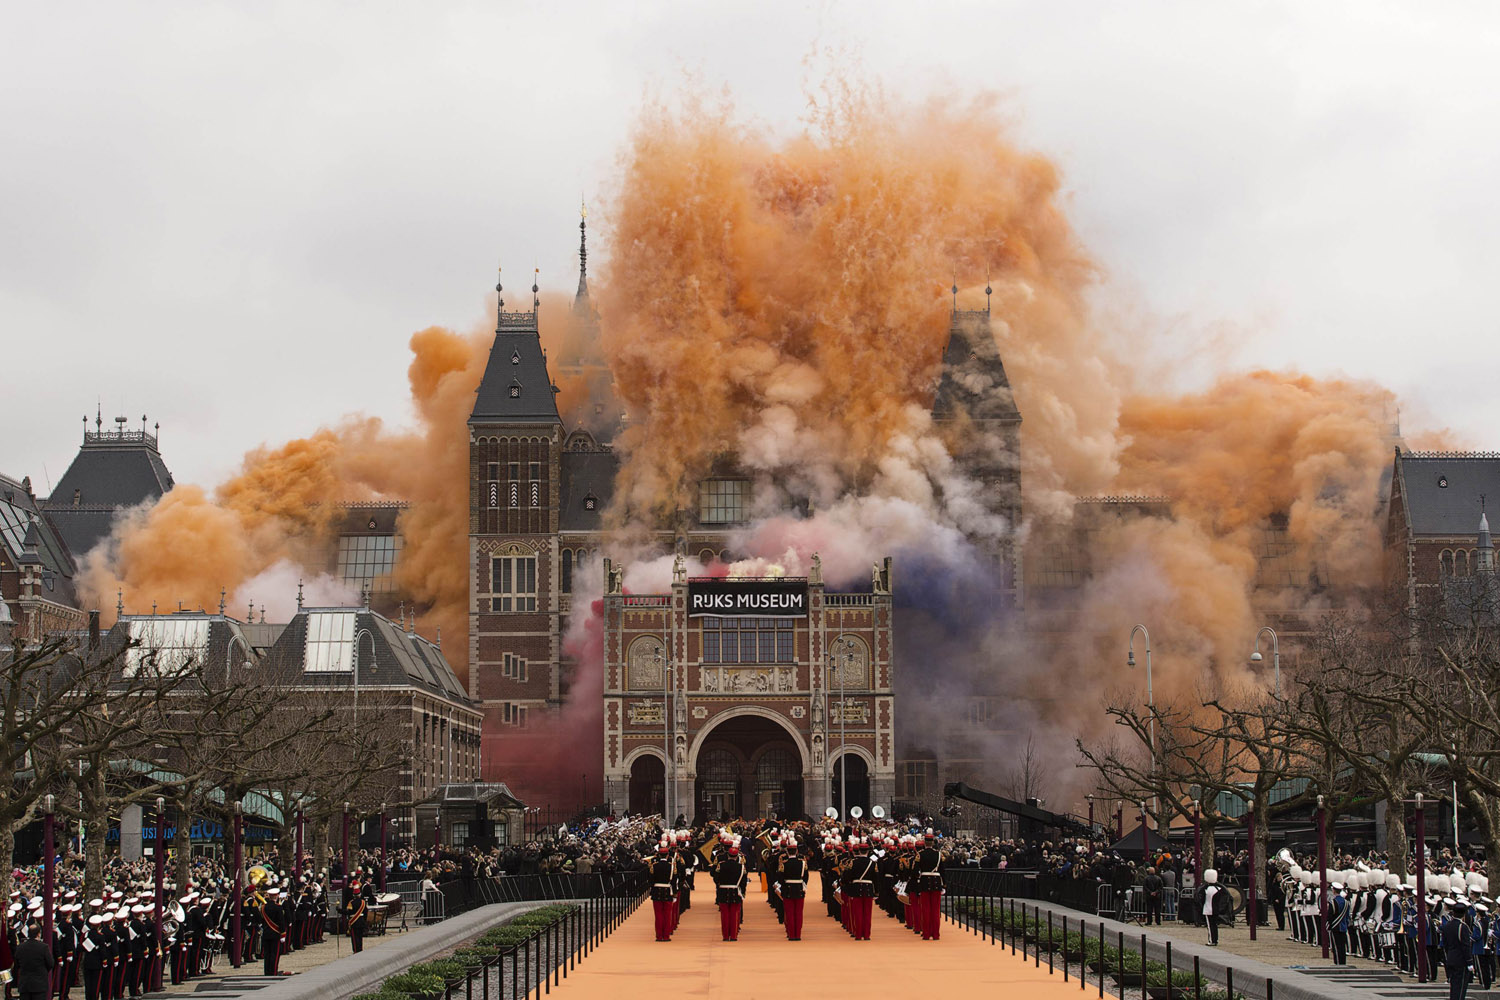 April 13, 2013. Queen Beatrix of the Netherlands (not pictured) ignites fireworks at the Rijksmuseum in Amsterdam.